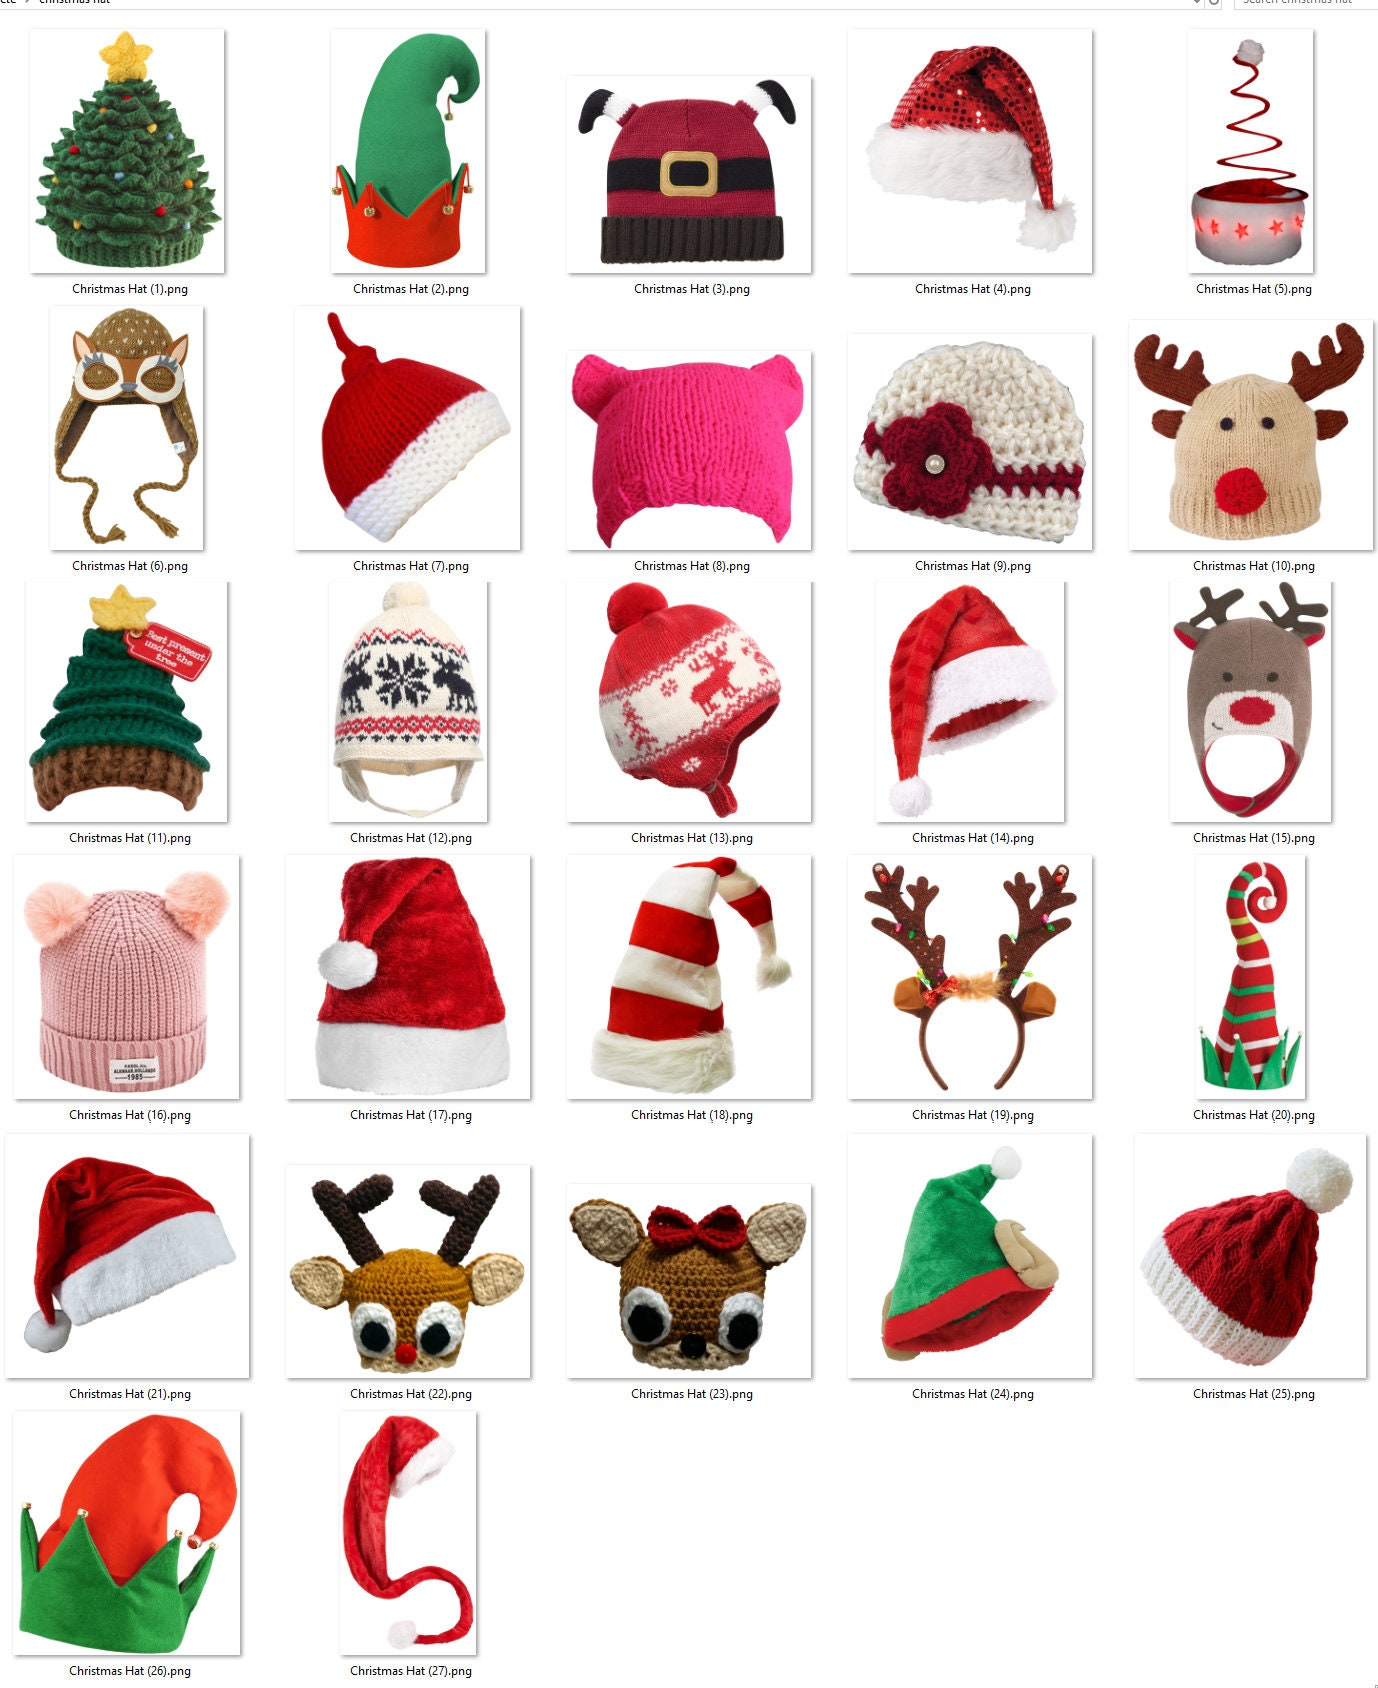 d6a75700b Holiday Hat Overlays in PNG Format - Christmas Hats, Santa Hat ...